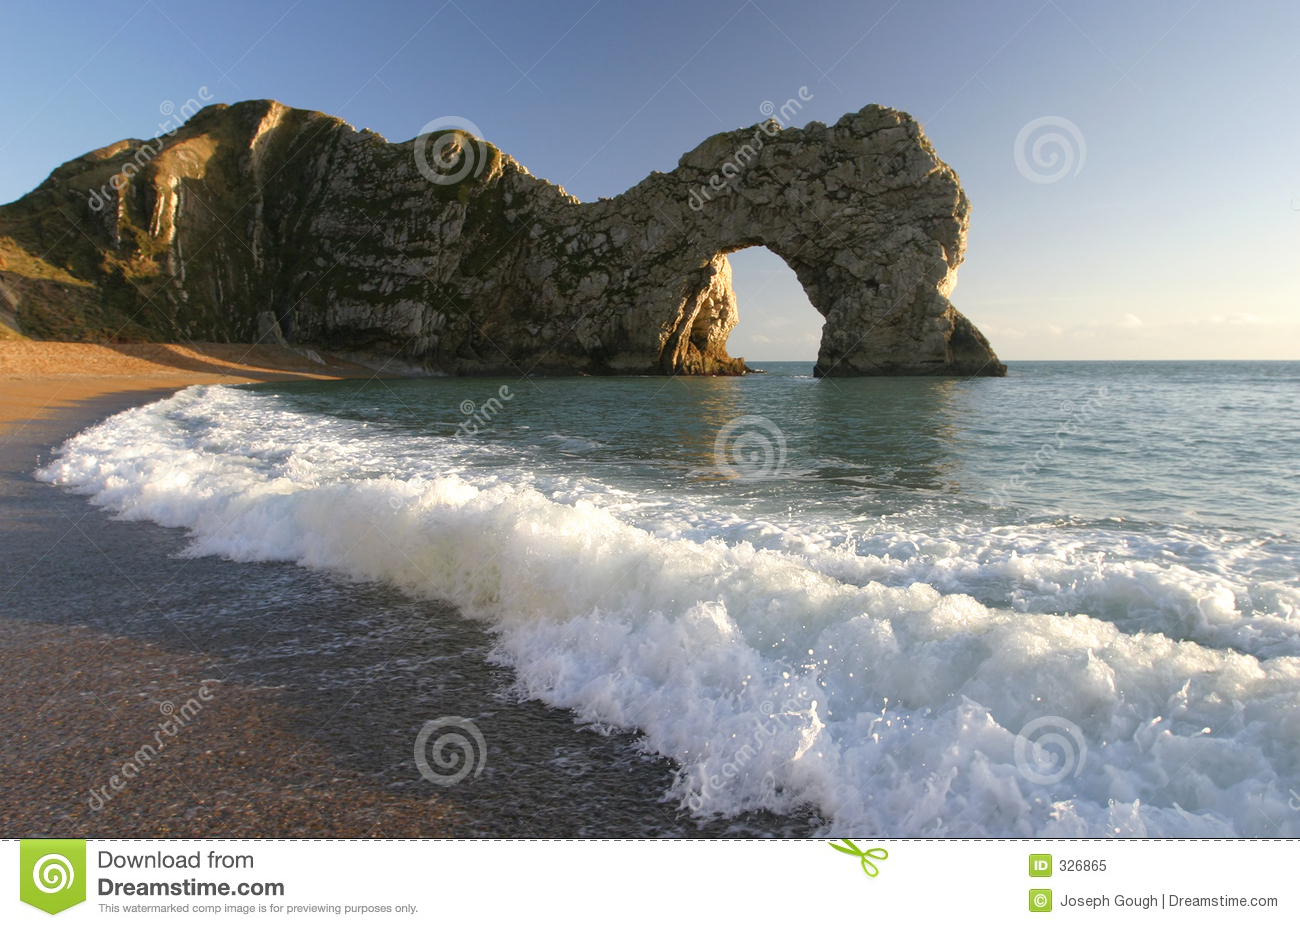 Durdle Door clipart #15, Download drawings